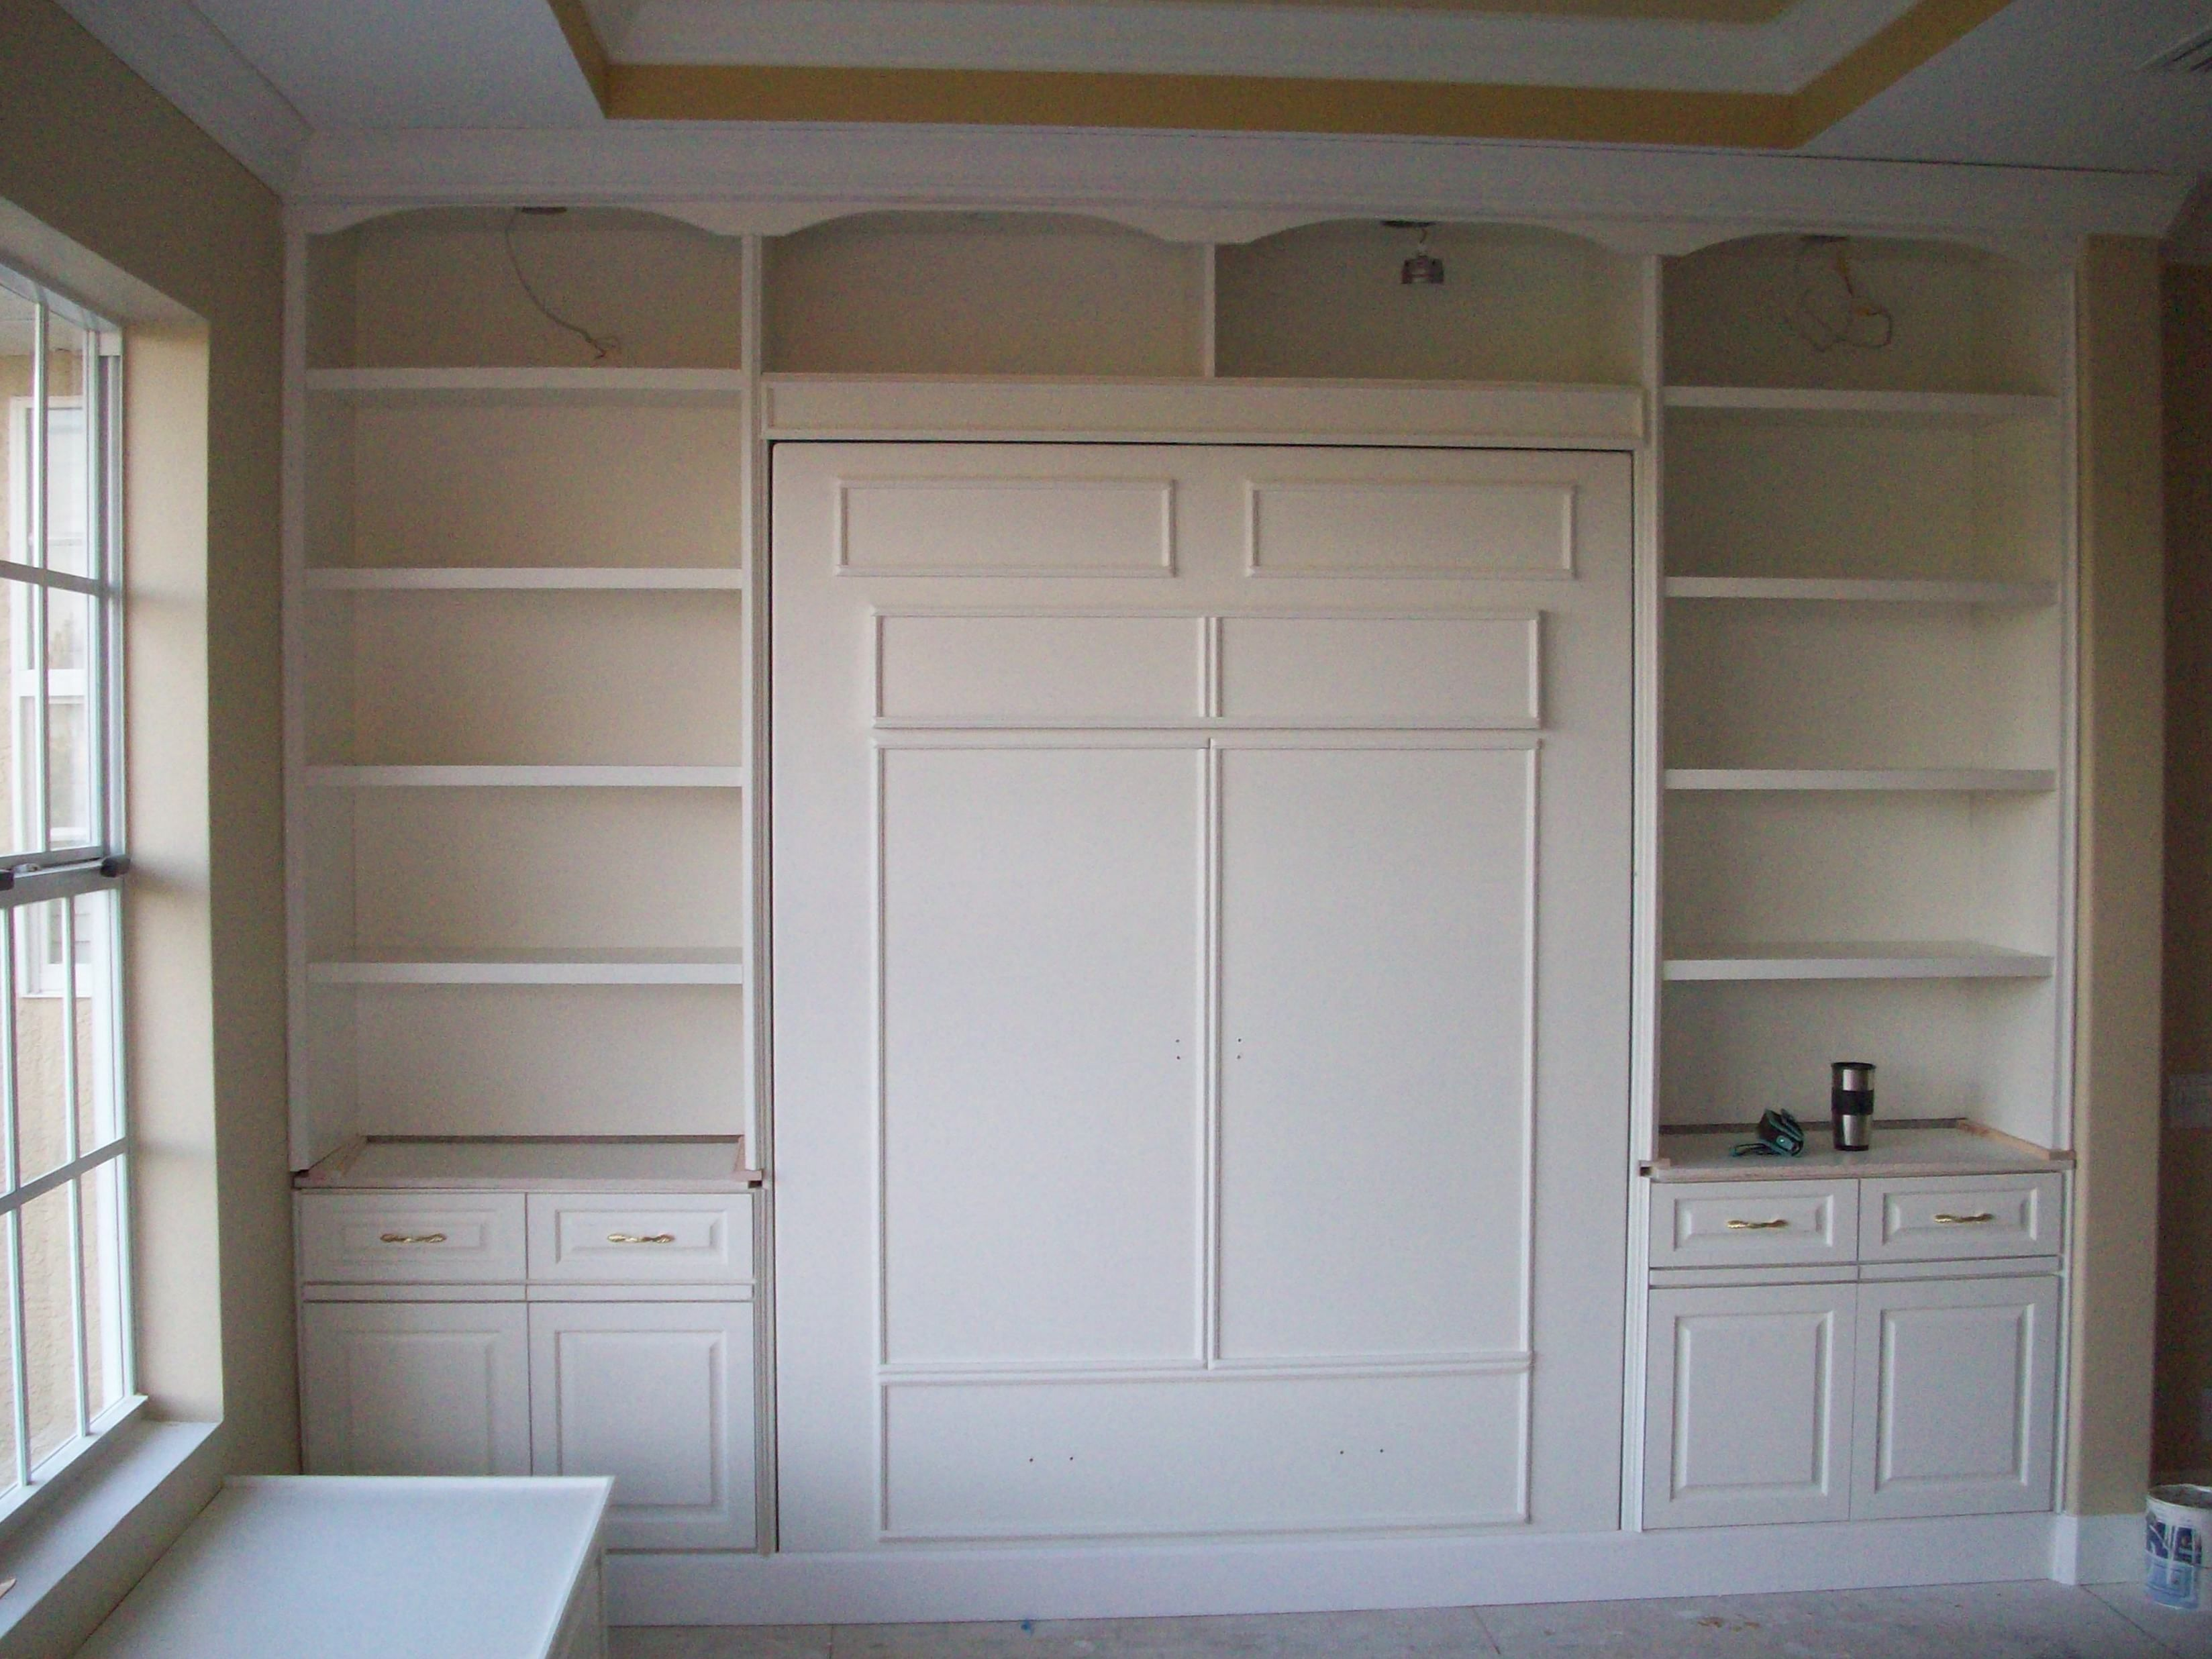 built into wall bed. This Custom Murphy Bed Unit Was Built Into A Craft Room. Melbourne, FL Wall